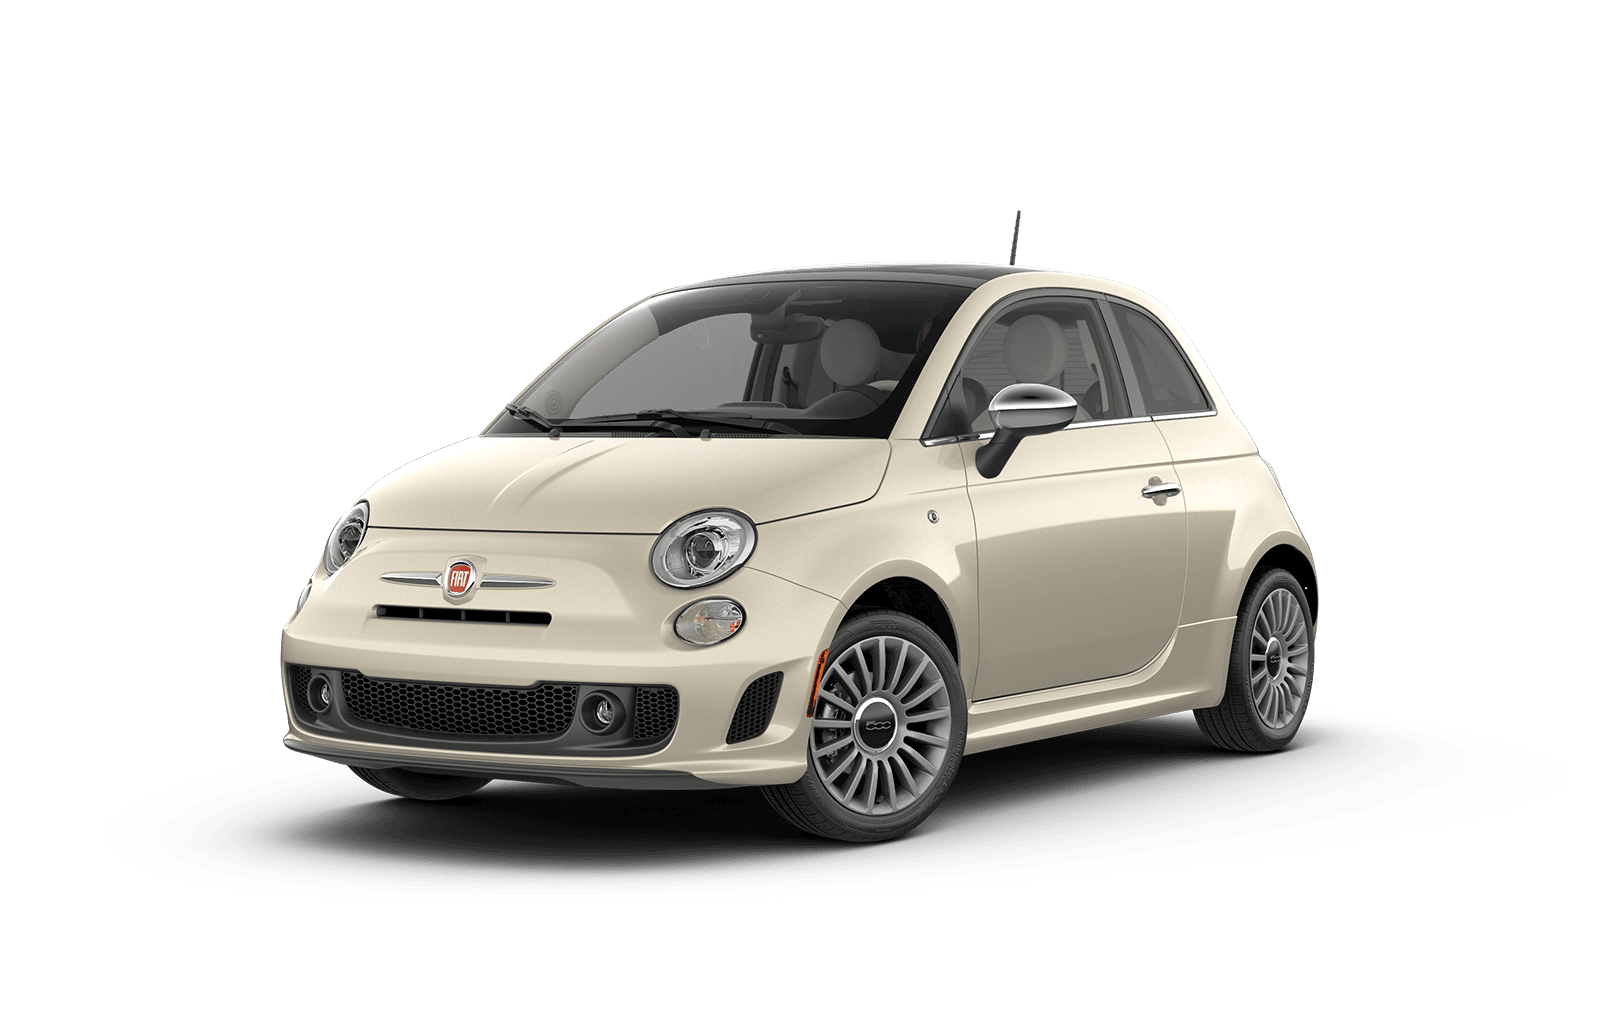 2019 FIAT 500 Full View in Off White with Wheels